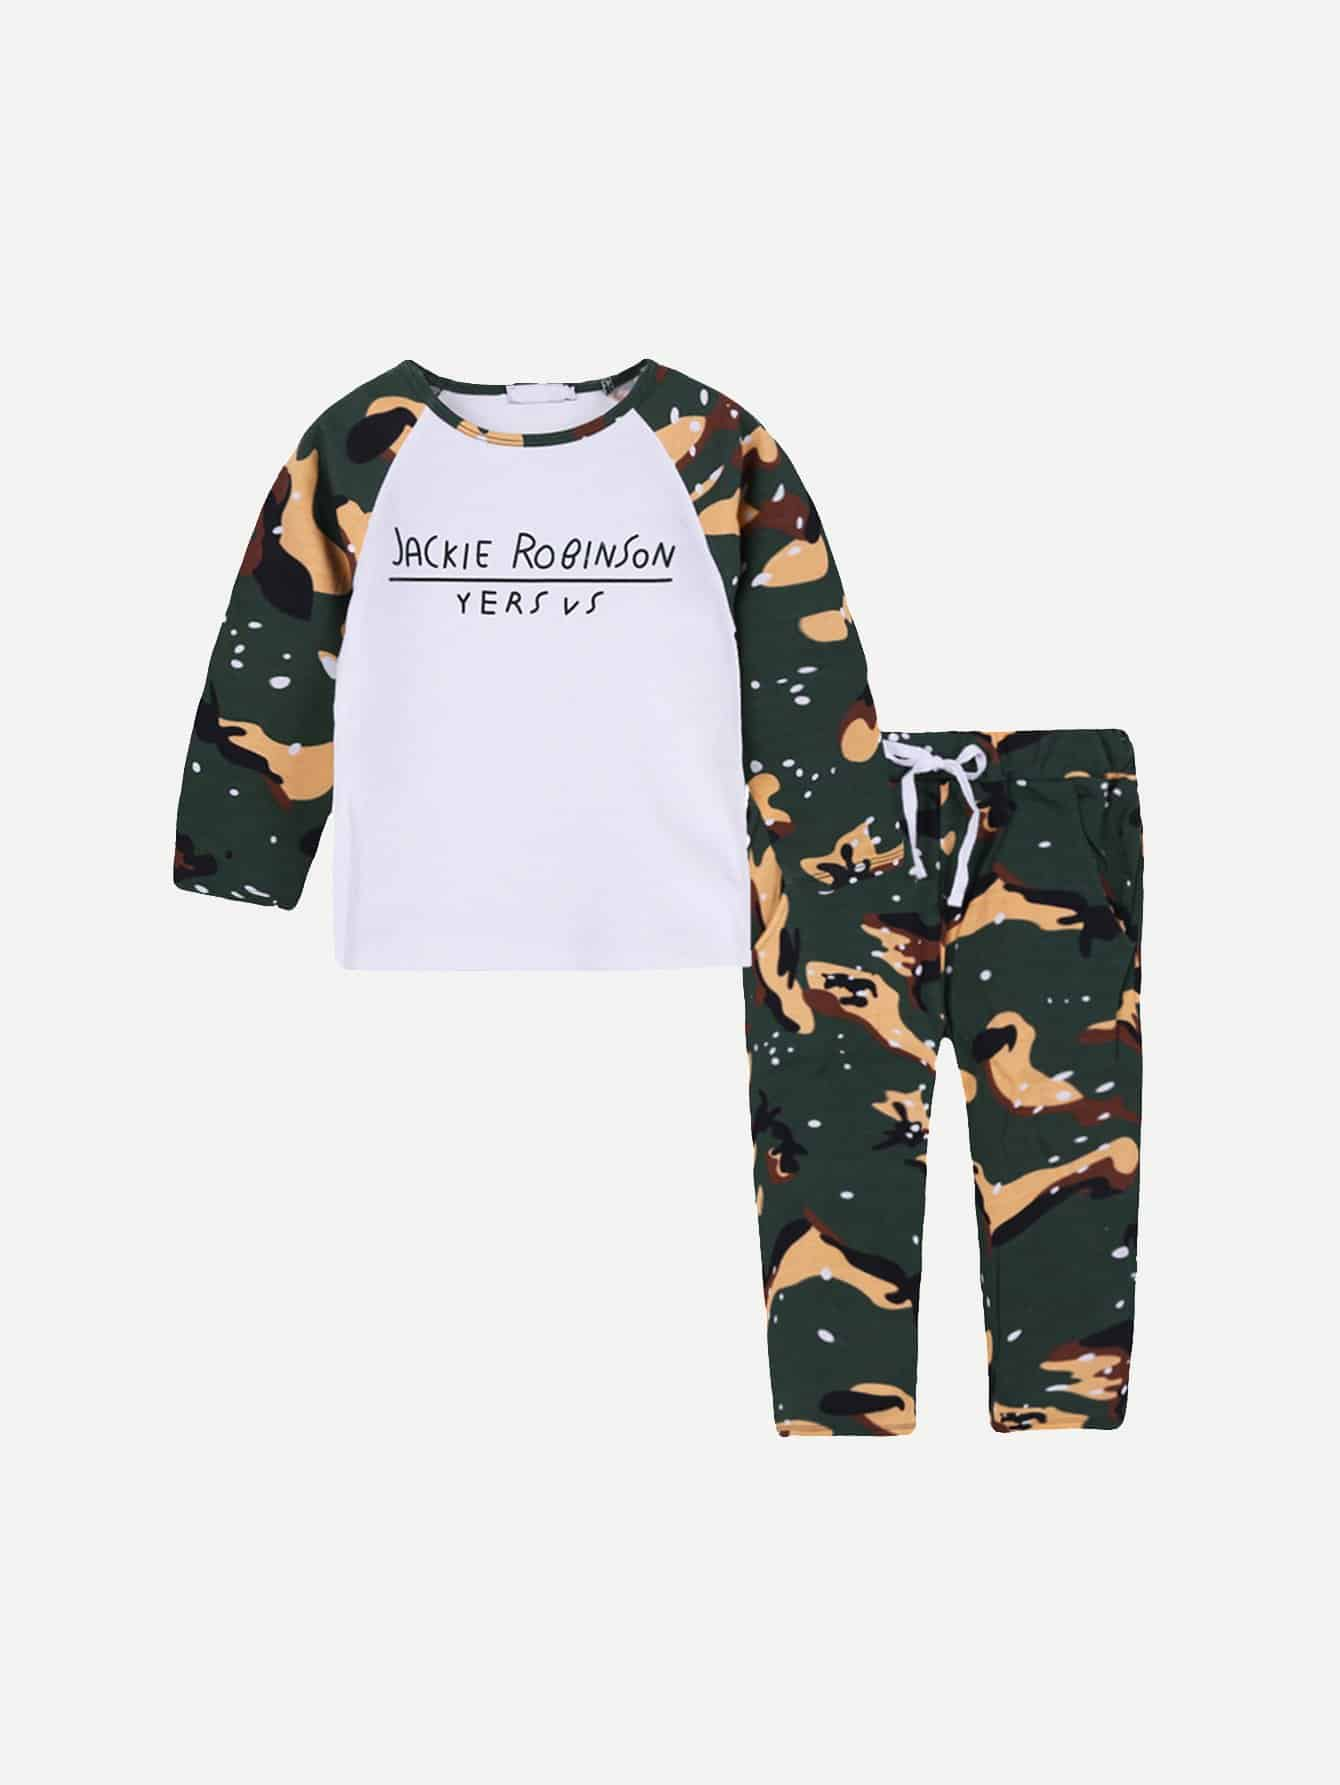 Boys Letter Print Tee With Camo Pants kids letter print sleeveless tee with tropical print pants